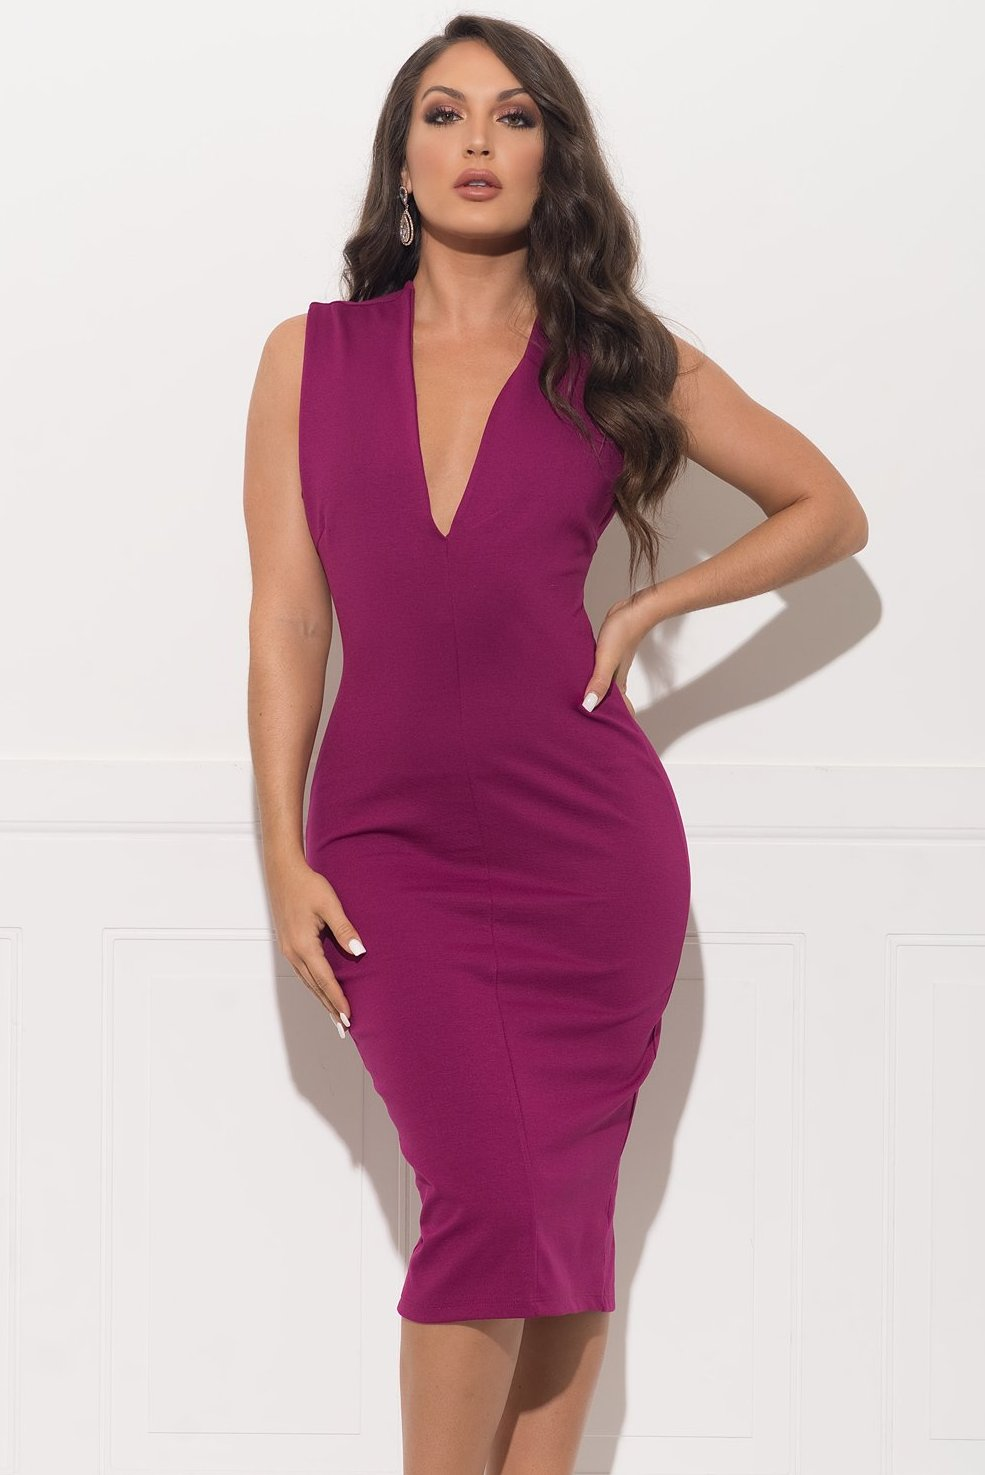 Love At First Sight Dress - Plum